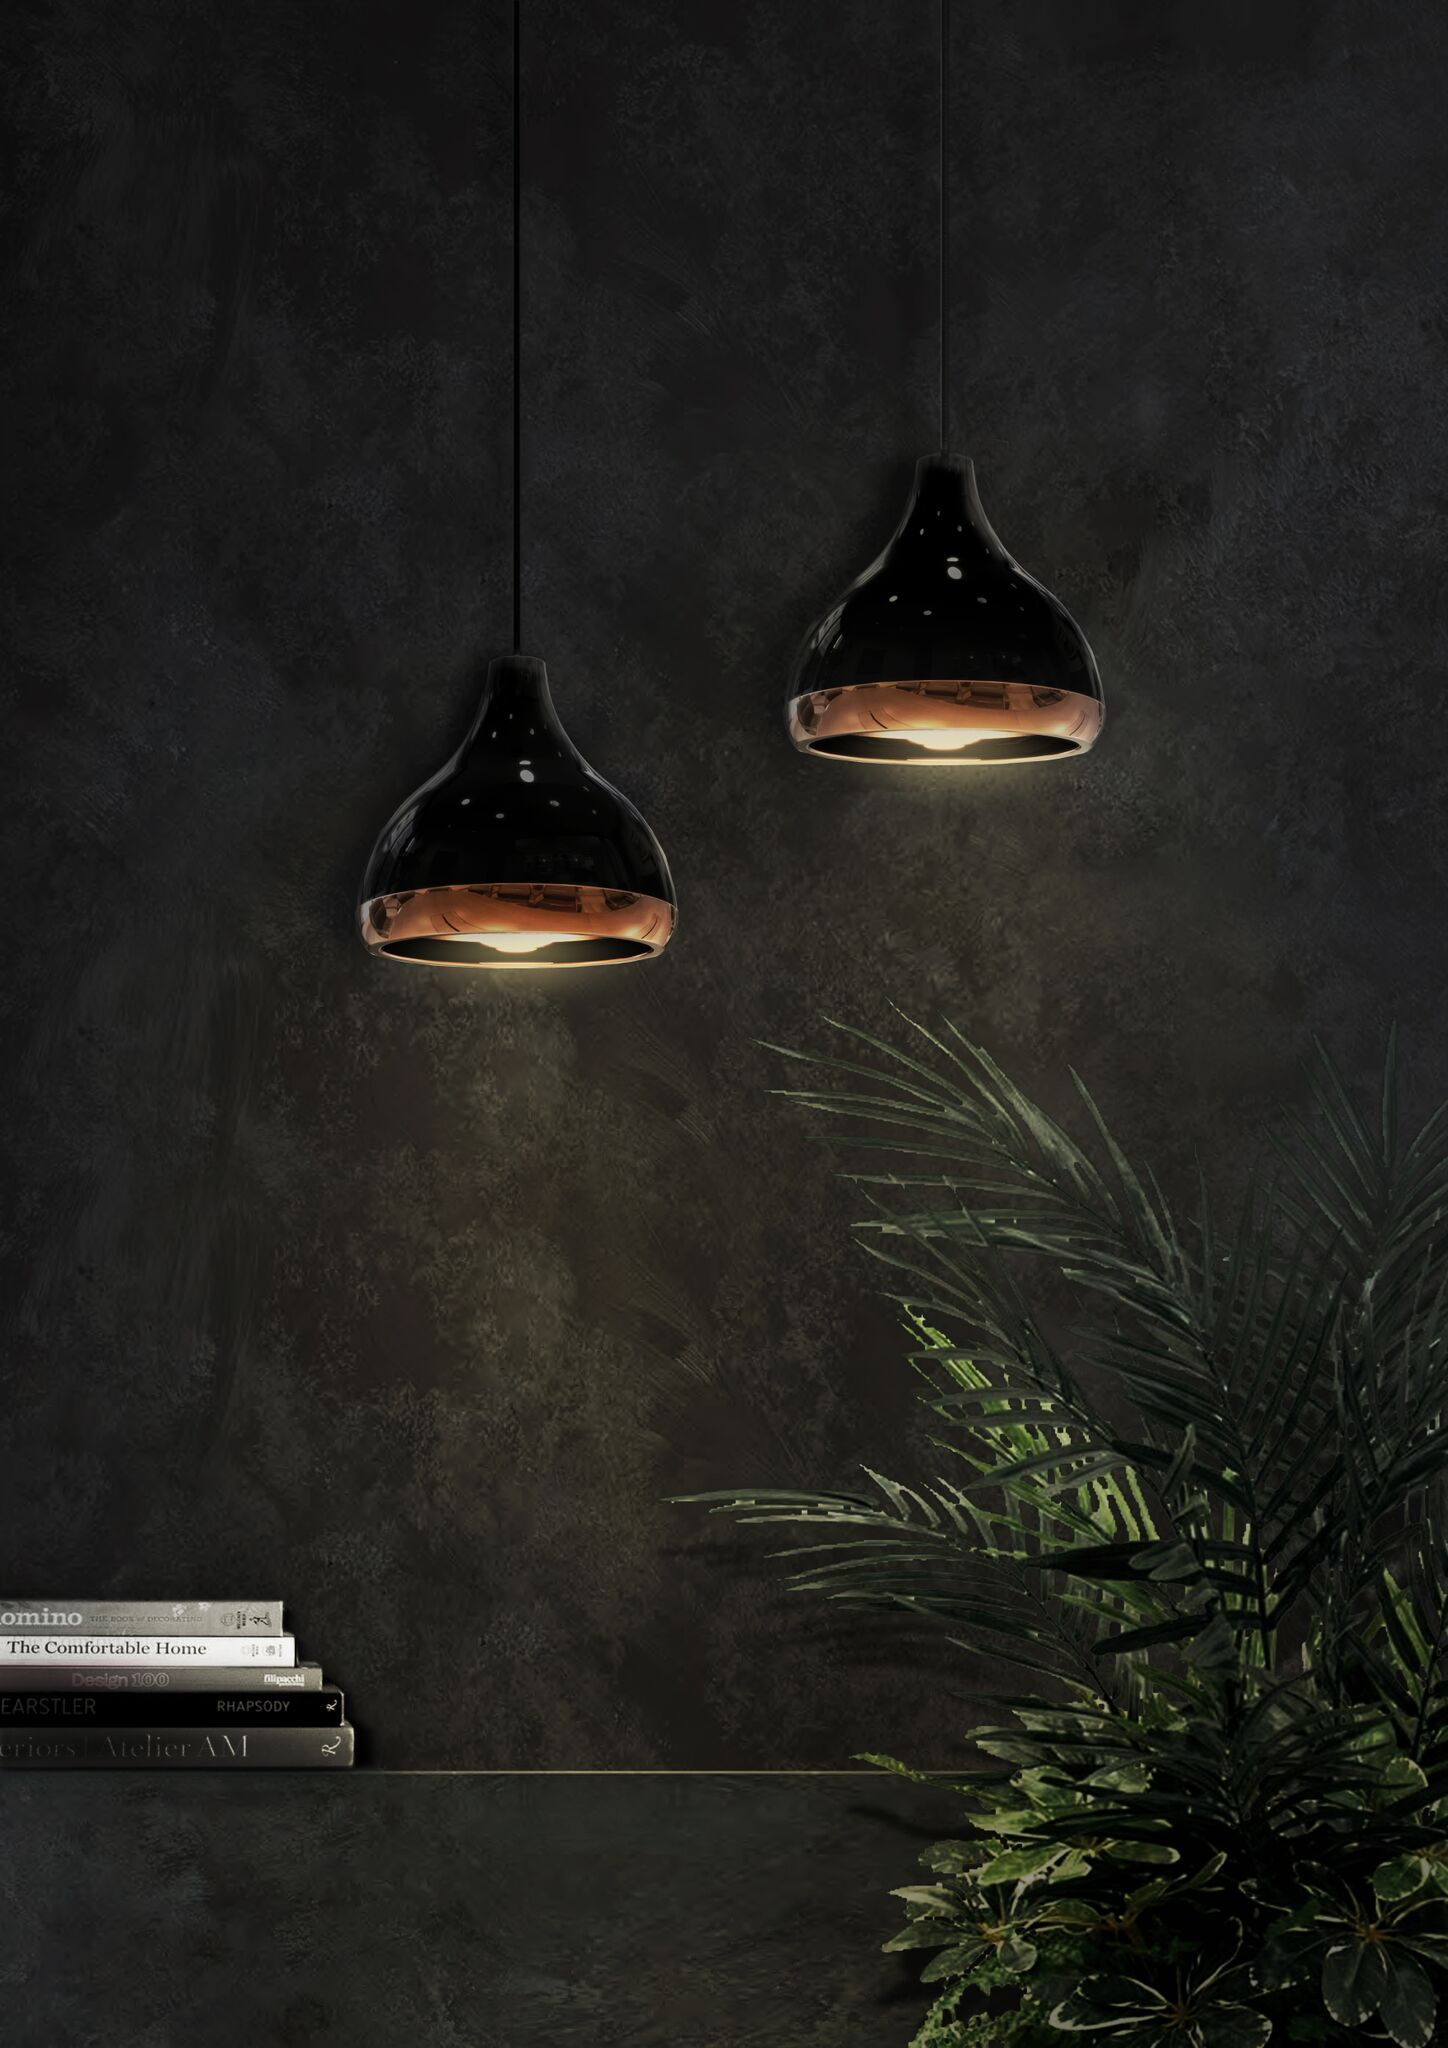 Transform Your Hospitality Project With These Pretty and Functional Lighting Pieces 💡 hospitality project Transform Your Hospitality Project With These Pretty and Functional Lighting Pieces 💡 15 3